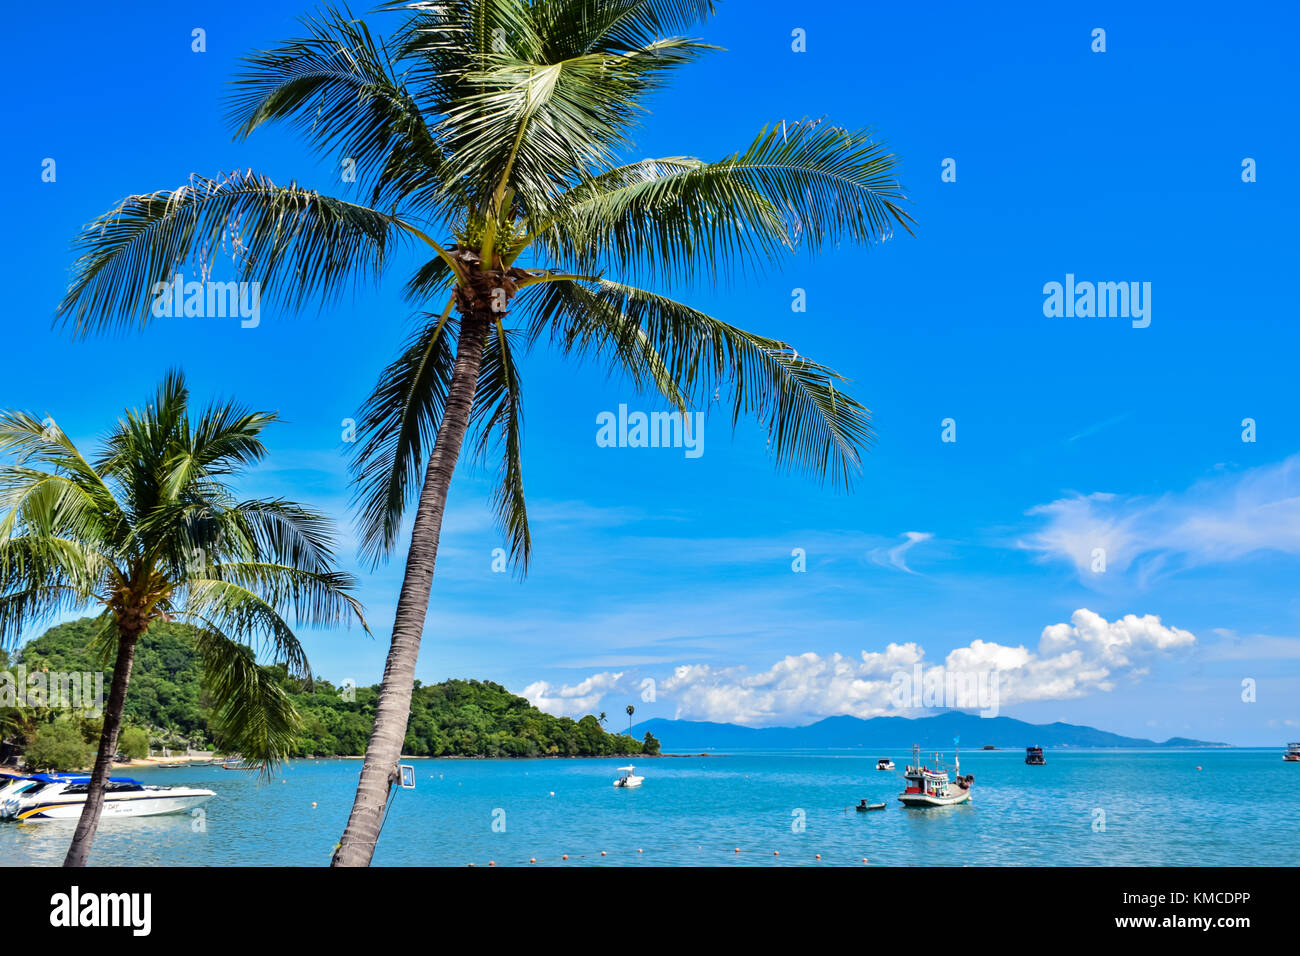 Beautiful tropical coconut palm trees at Thailand beach of Samui island, famous vacation destination - Stock Image